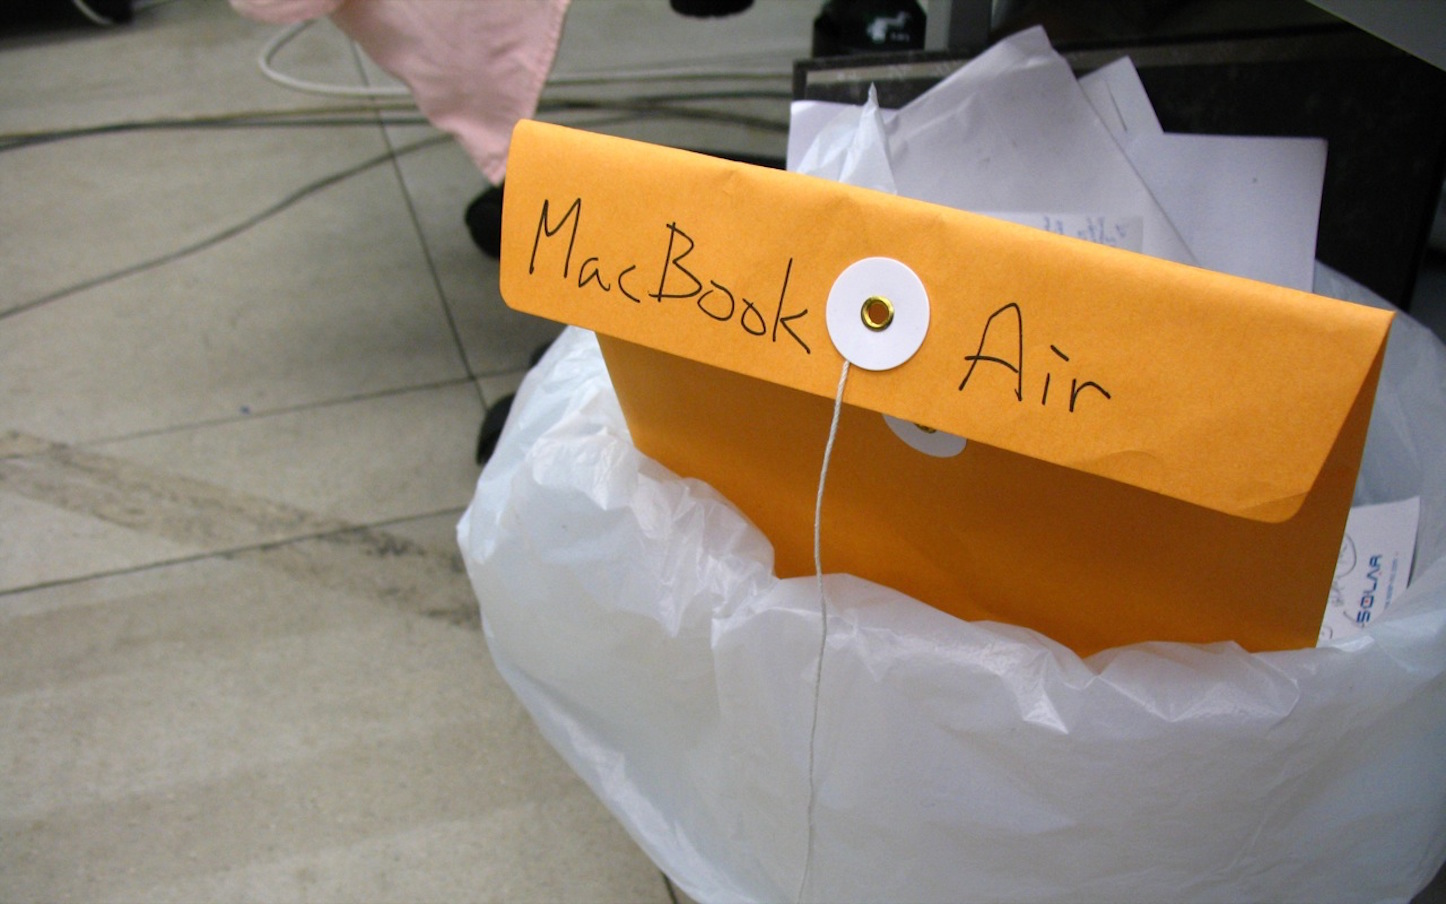 Macbook air in trash can